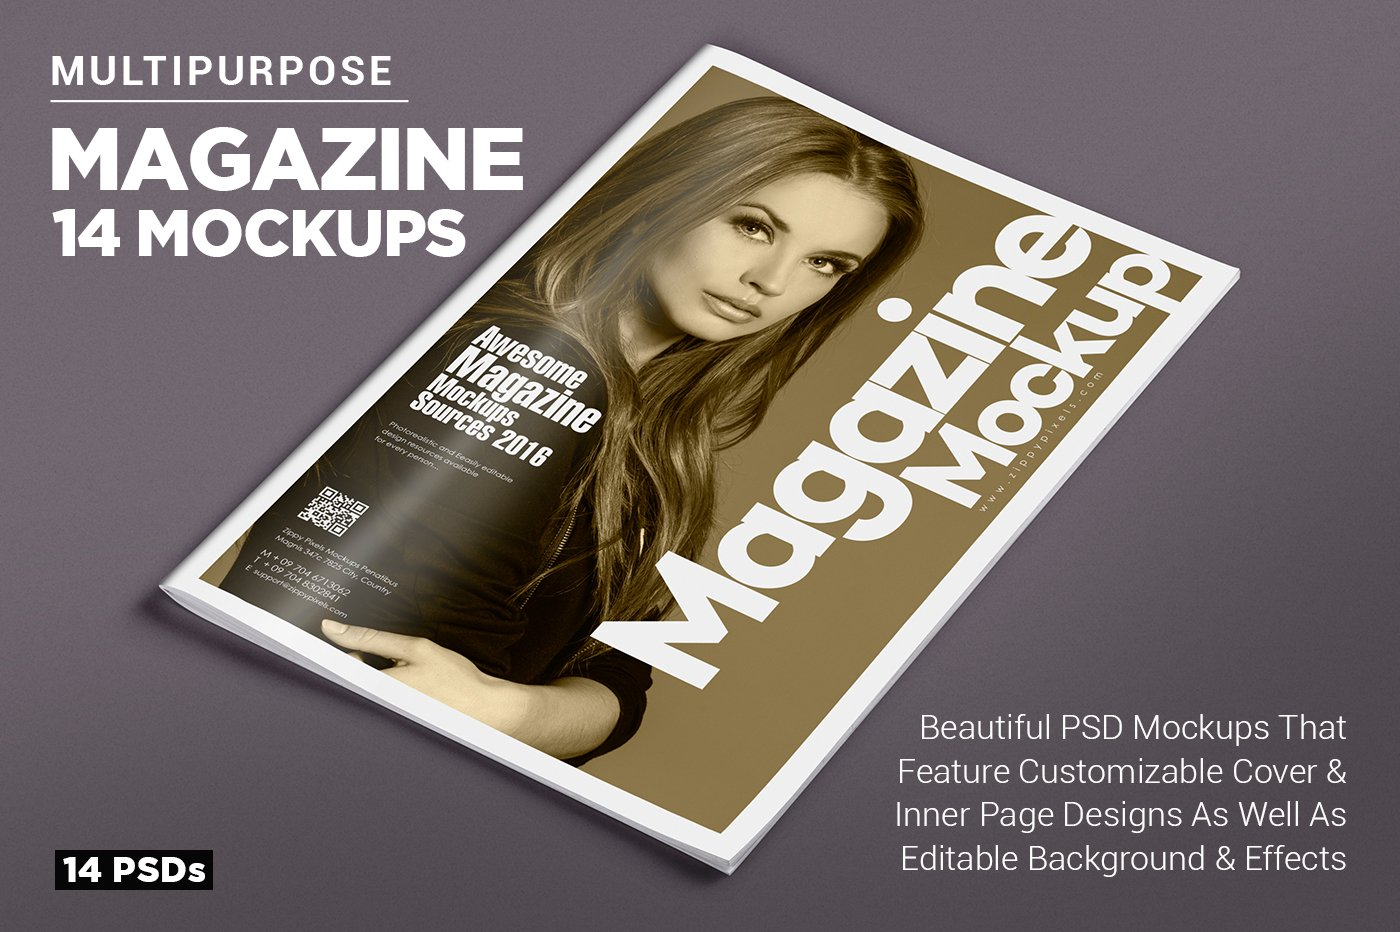 e magazine templates free download - 14 magazine mockups vol 7 product mockups creative market